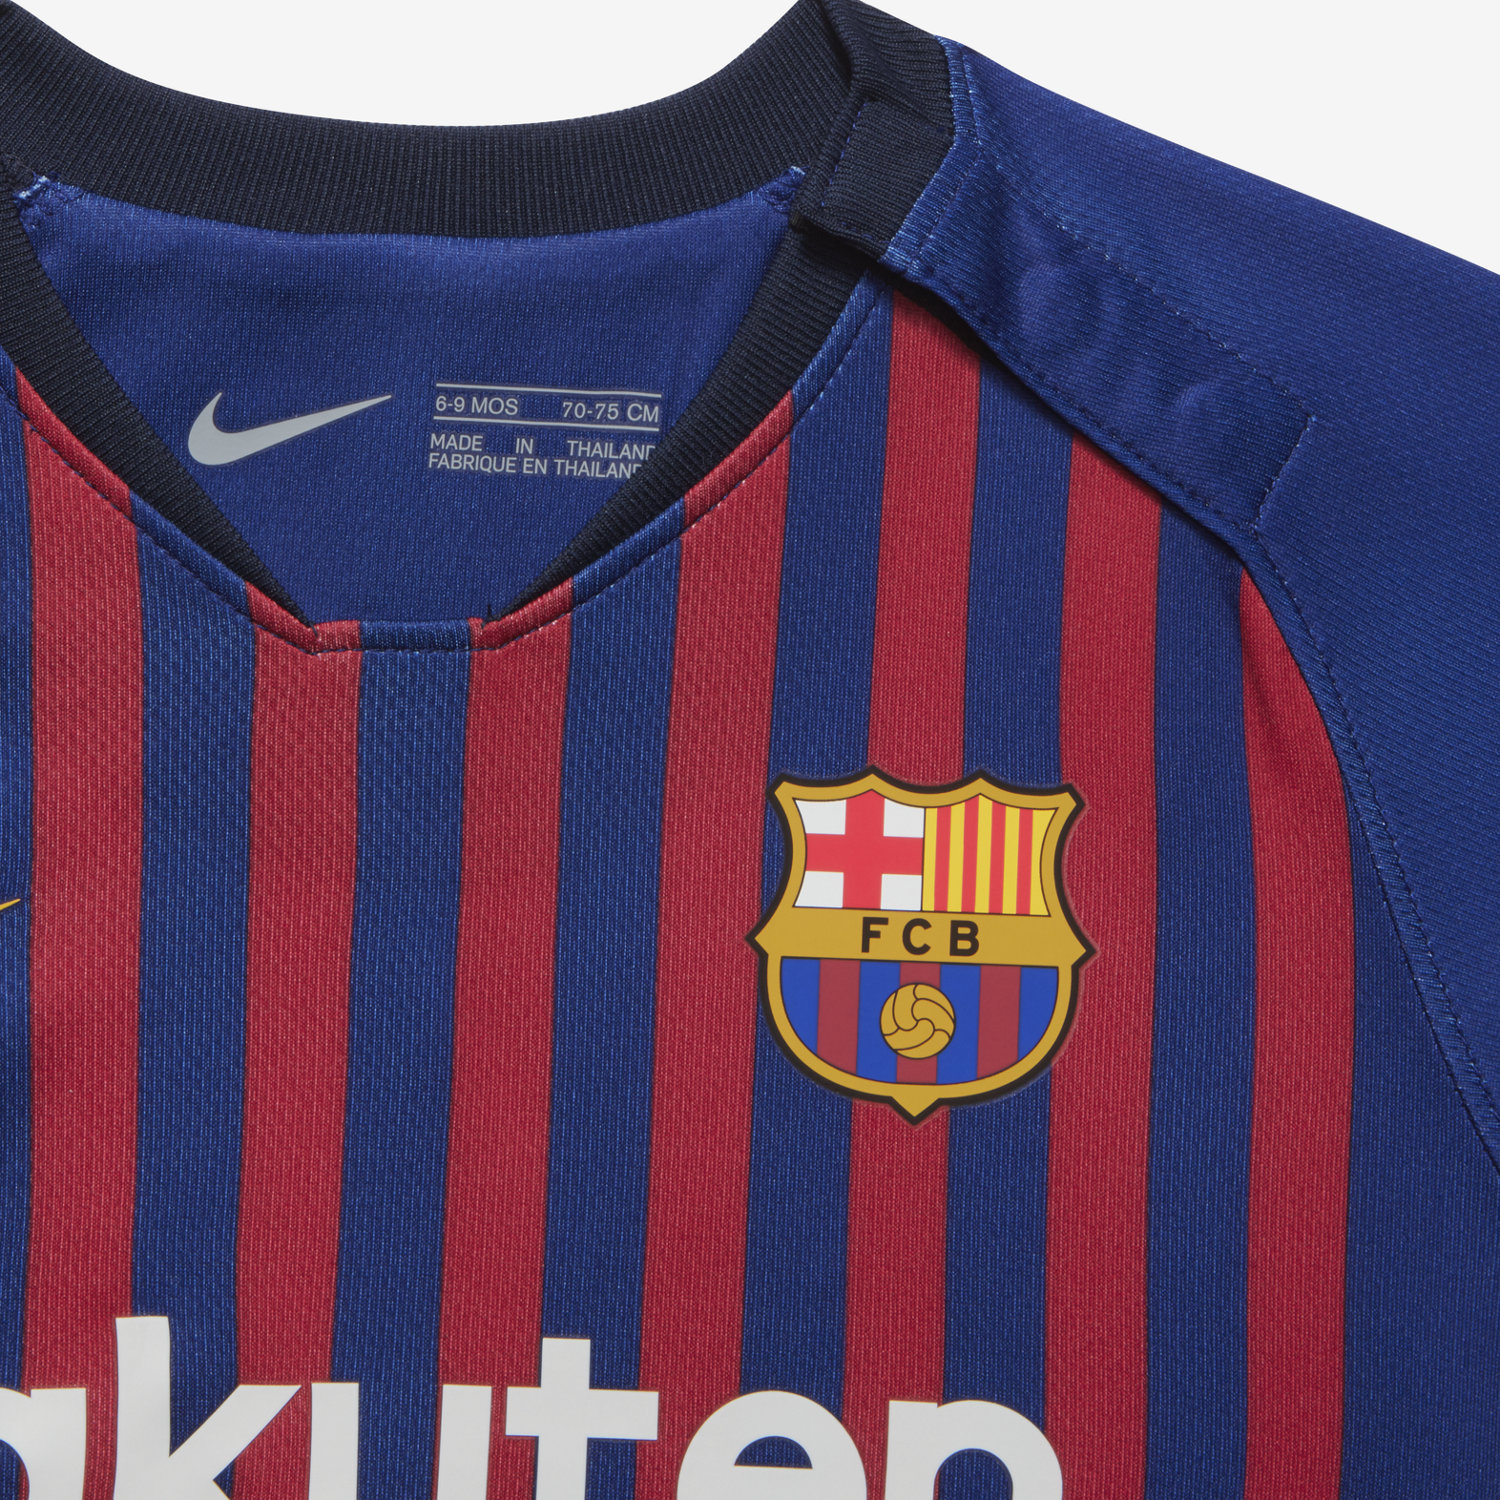 ba6f46ae5fb 2018 19 FC Barcelona Stadium Home Baby Football Kit. Nike.com IE